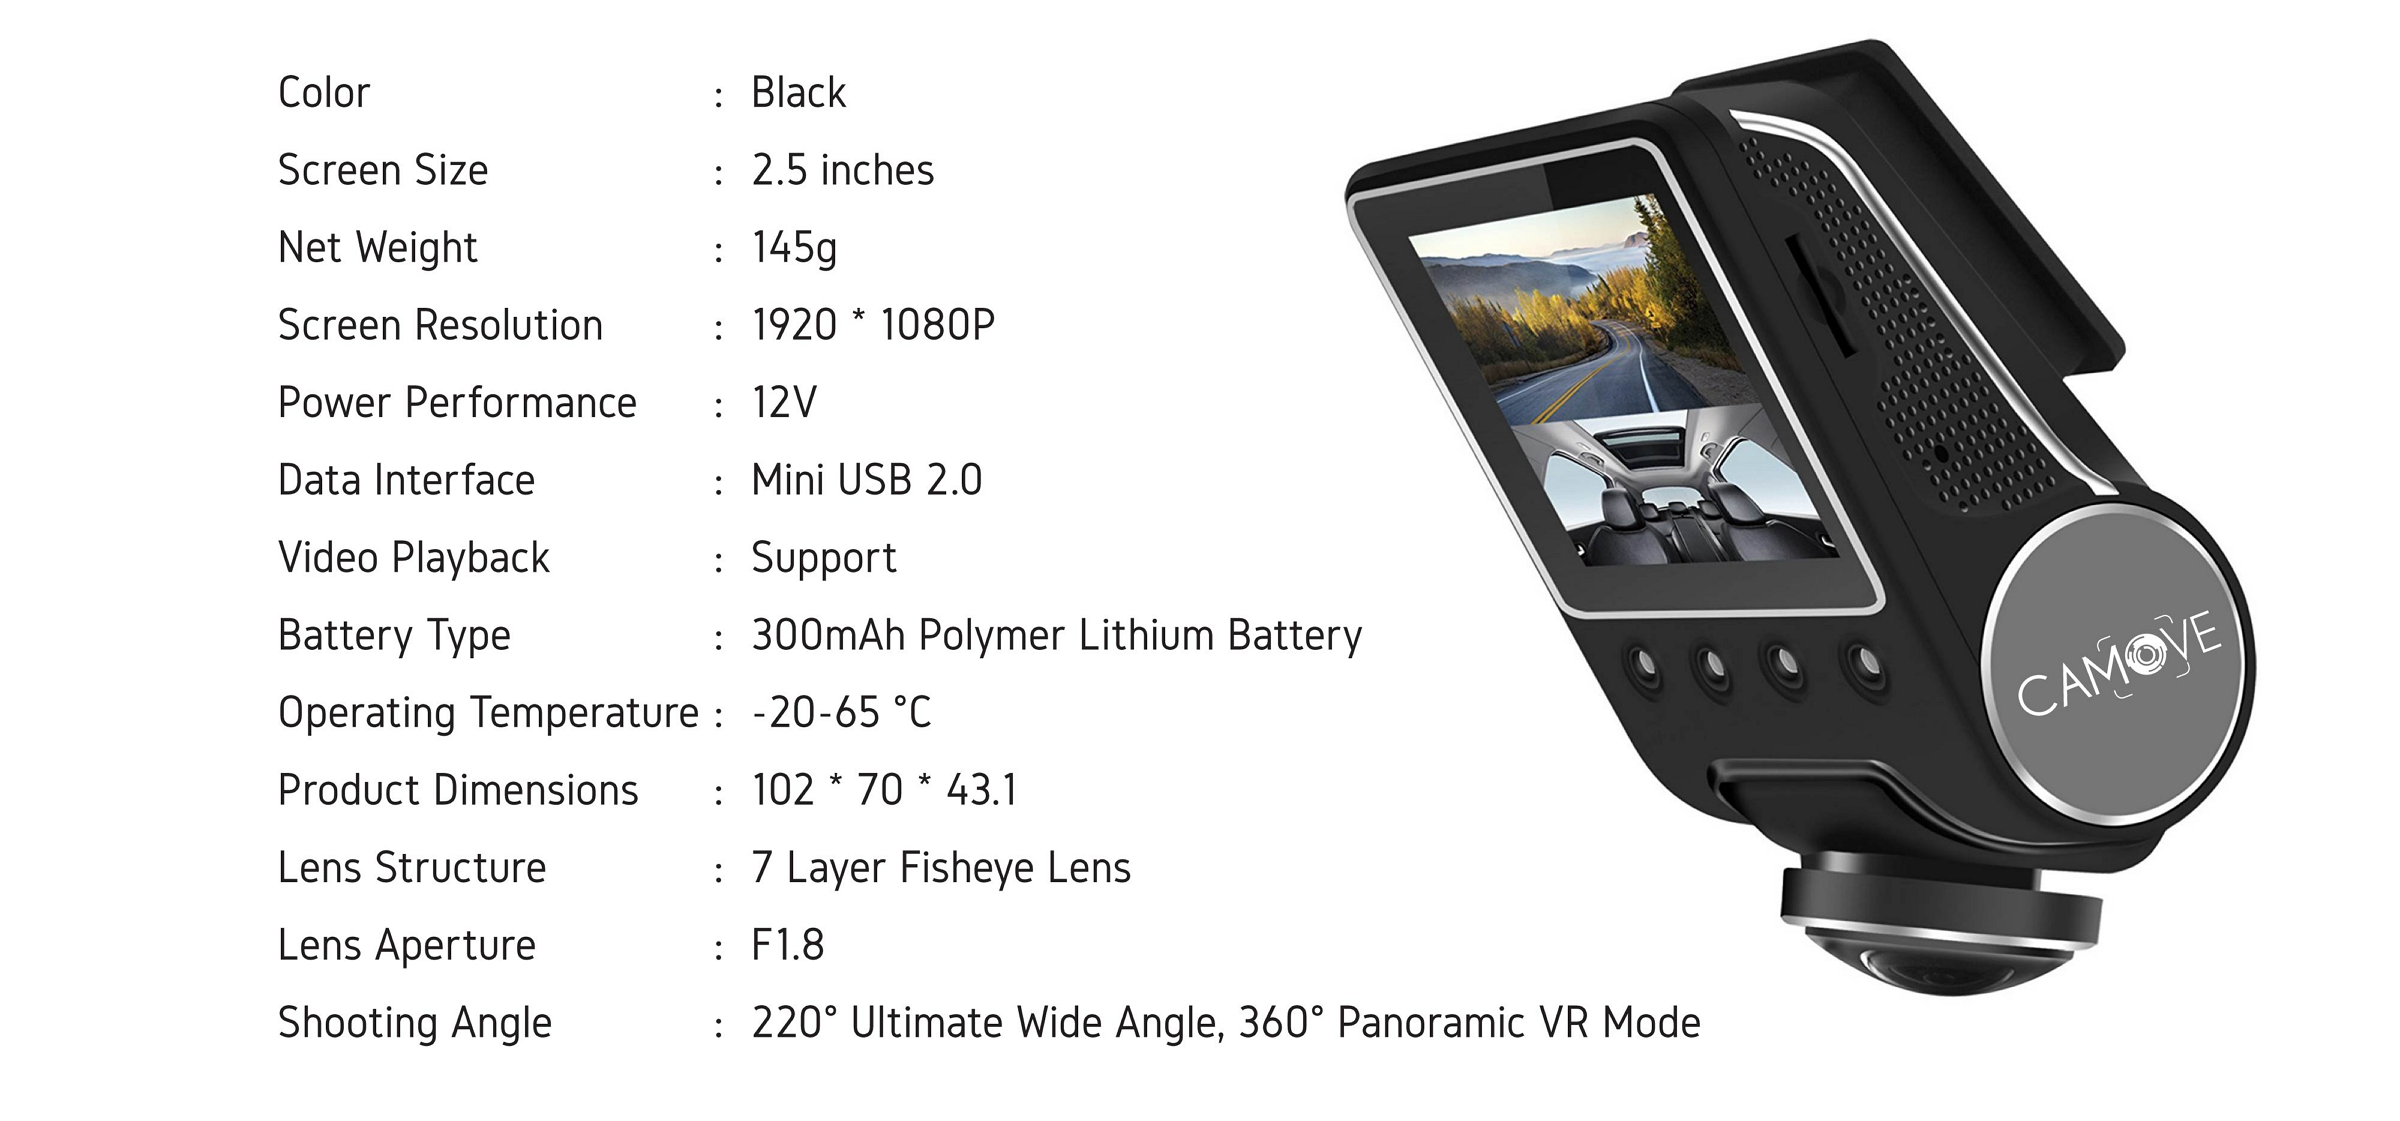 S700 Specification